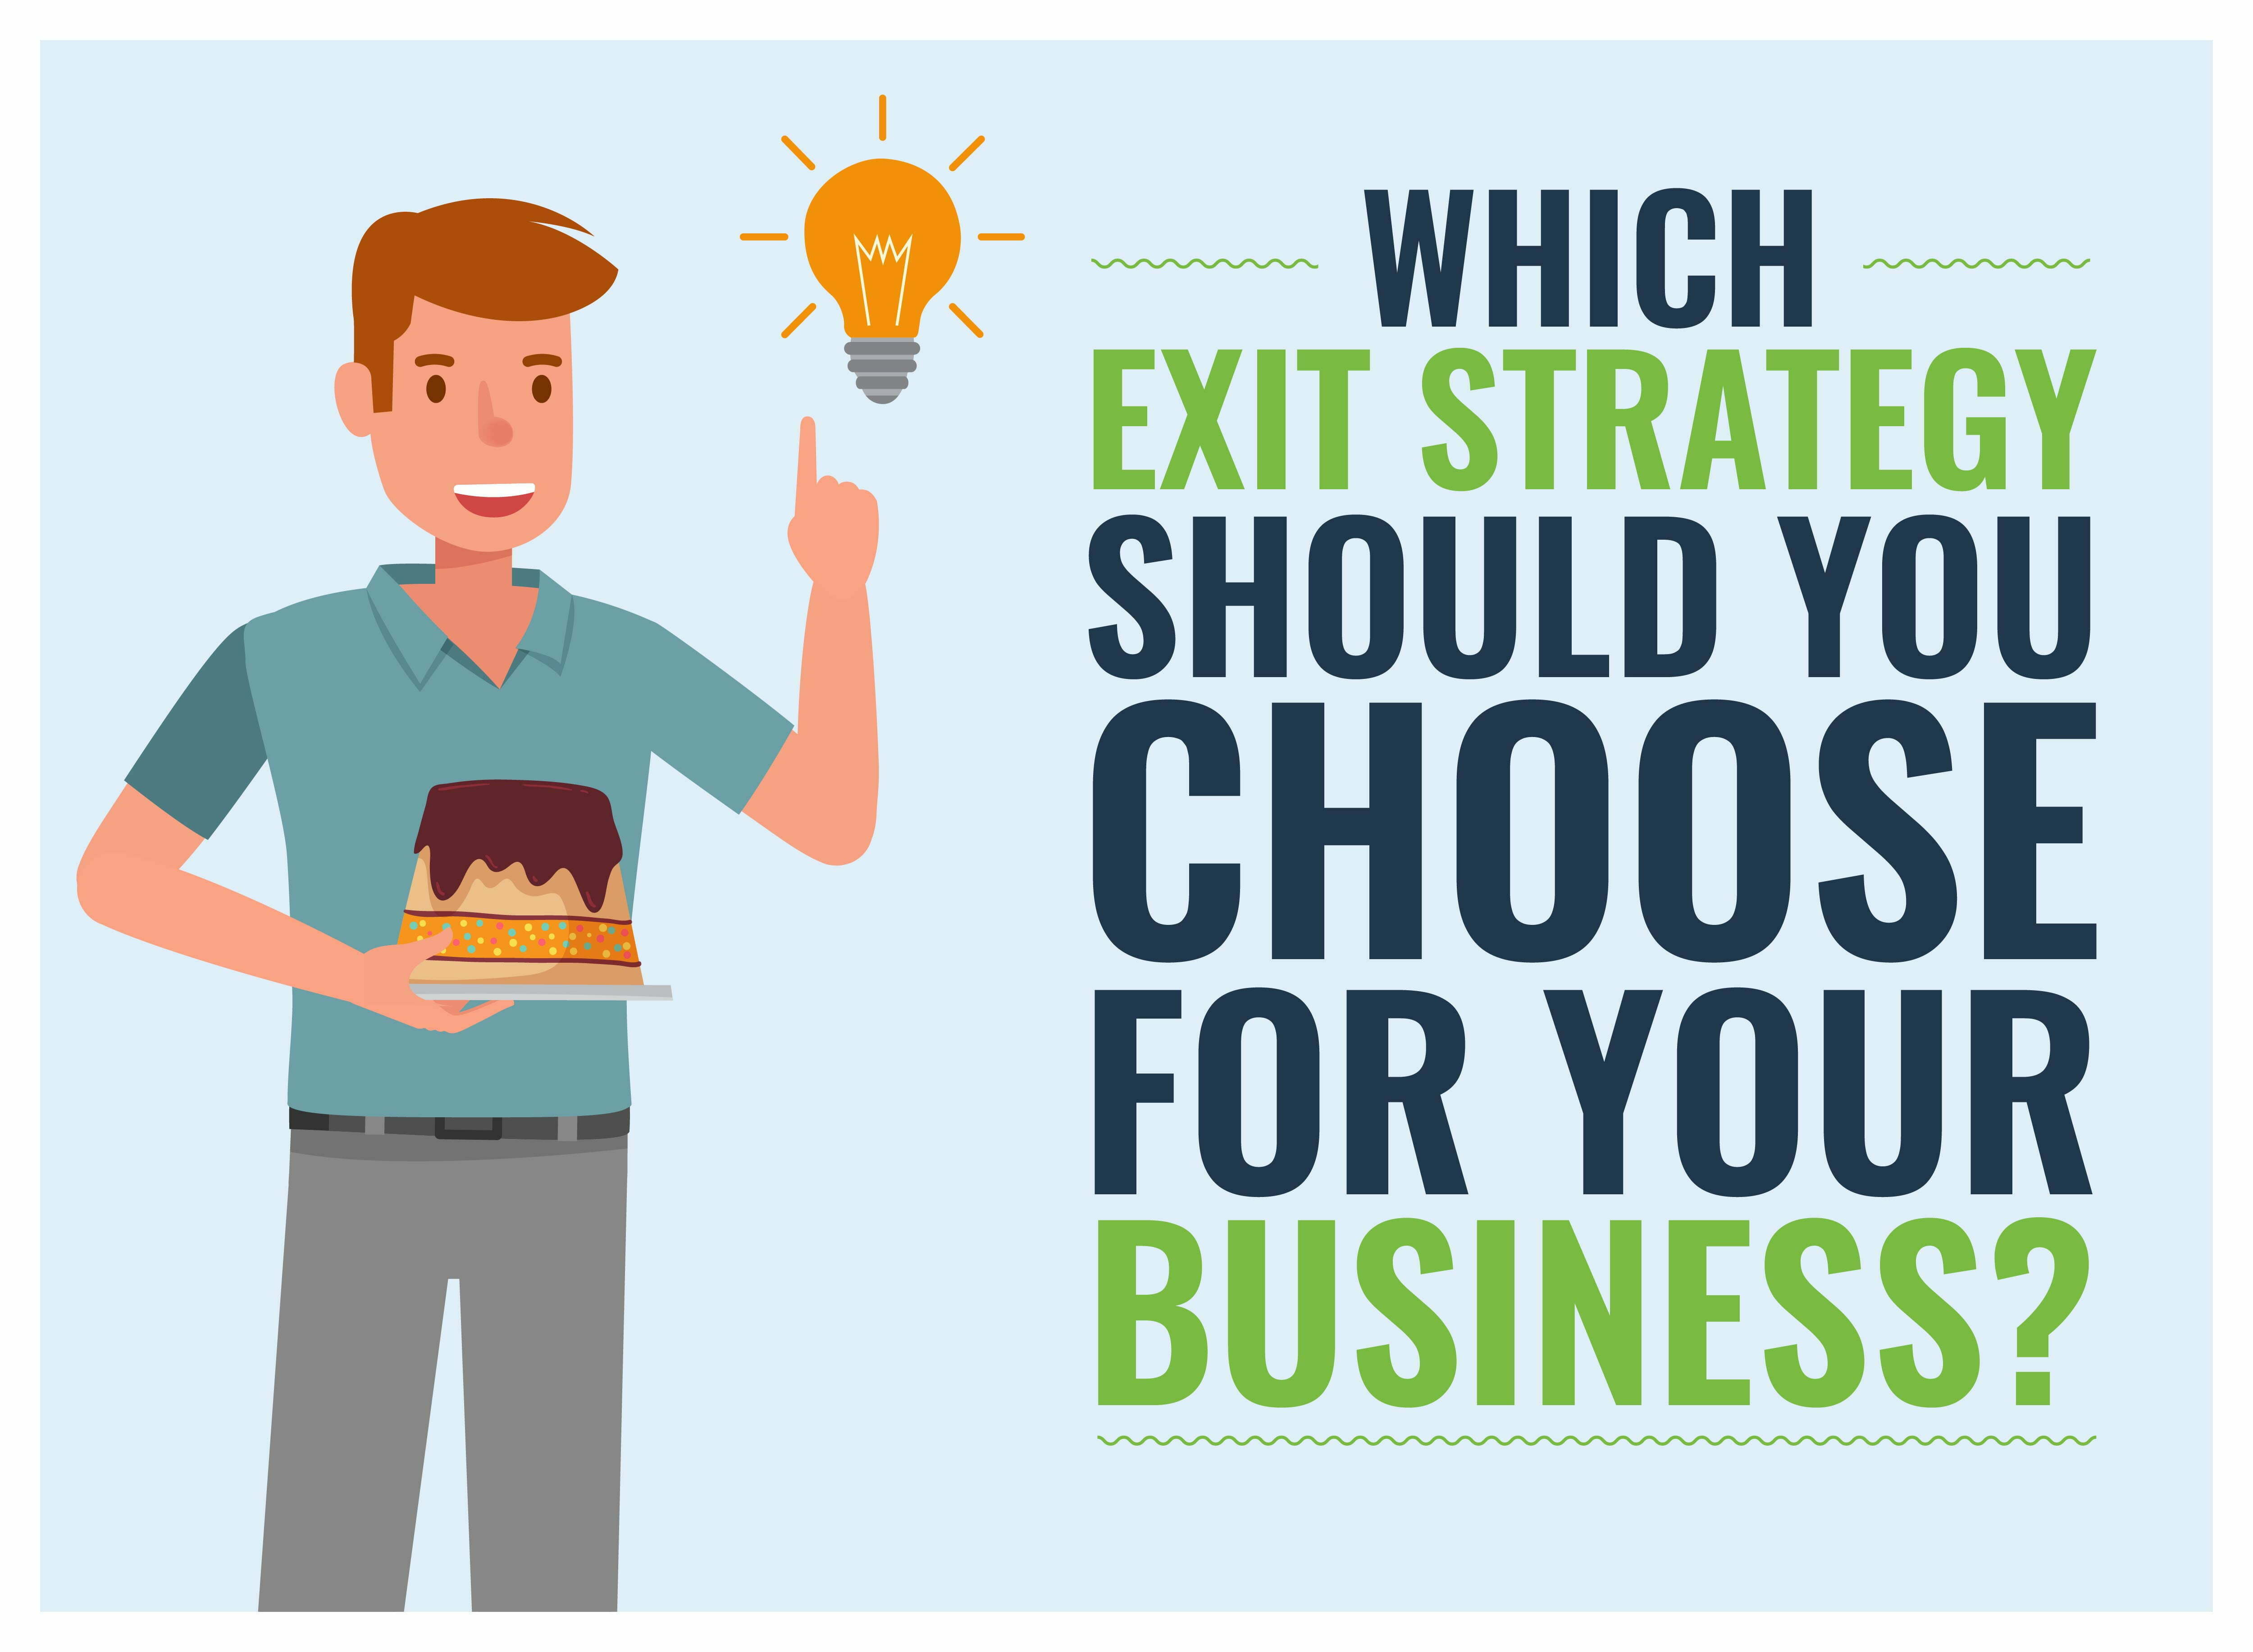 Business Exit Strategy Choices